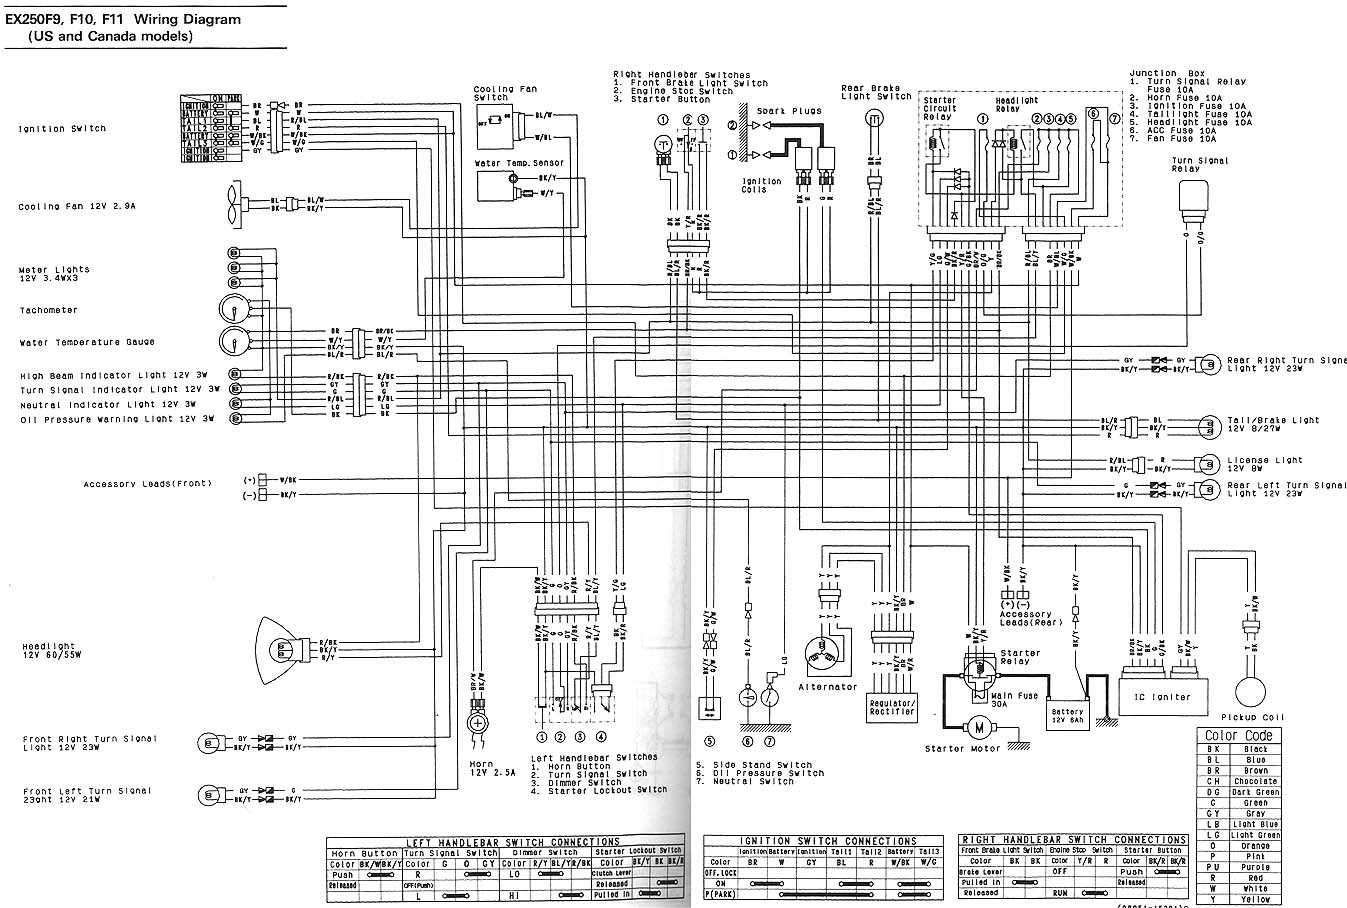 Ninja 300 Wiring Diagram - Free Wiring Diagram For You • on 1995 honda shadow wiring diagram, 1995 yamaha timberwolf wiring diagram, 1995 yamaha warrior wiring diagram, 1995 polaris magnum wiring diagram, 1995 honda rancher wiring diagram, 1995 polaris sportsman wiring diagram, 1995 harley davidson wiring diagram,